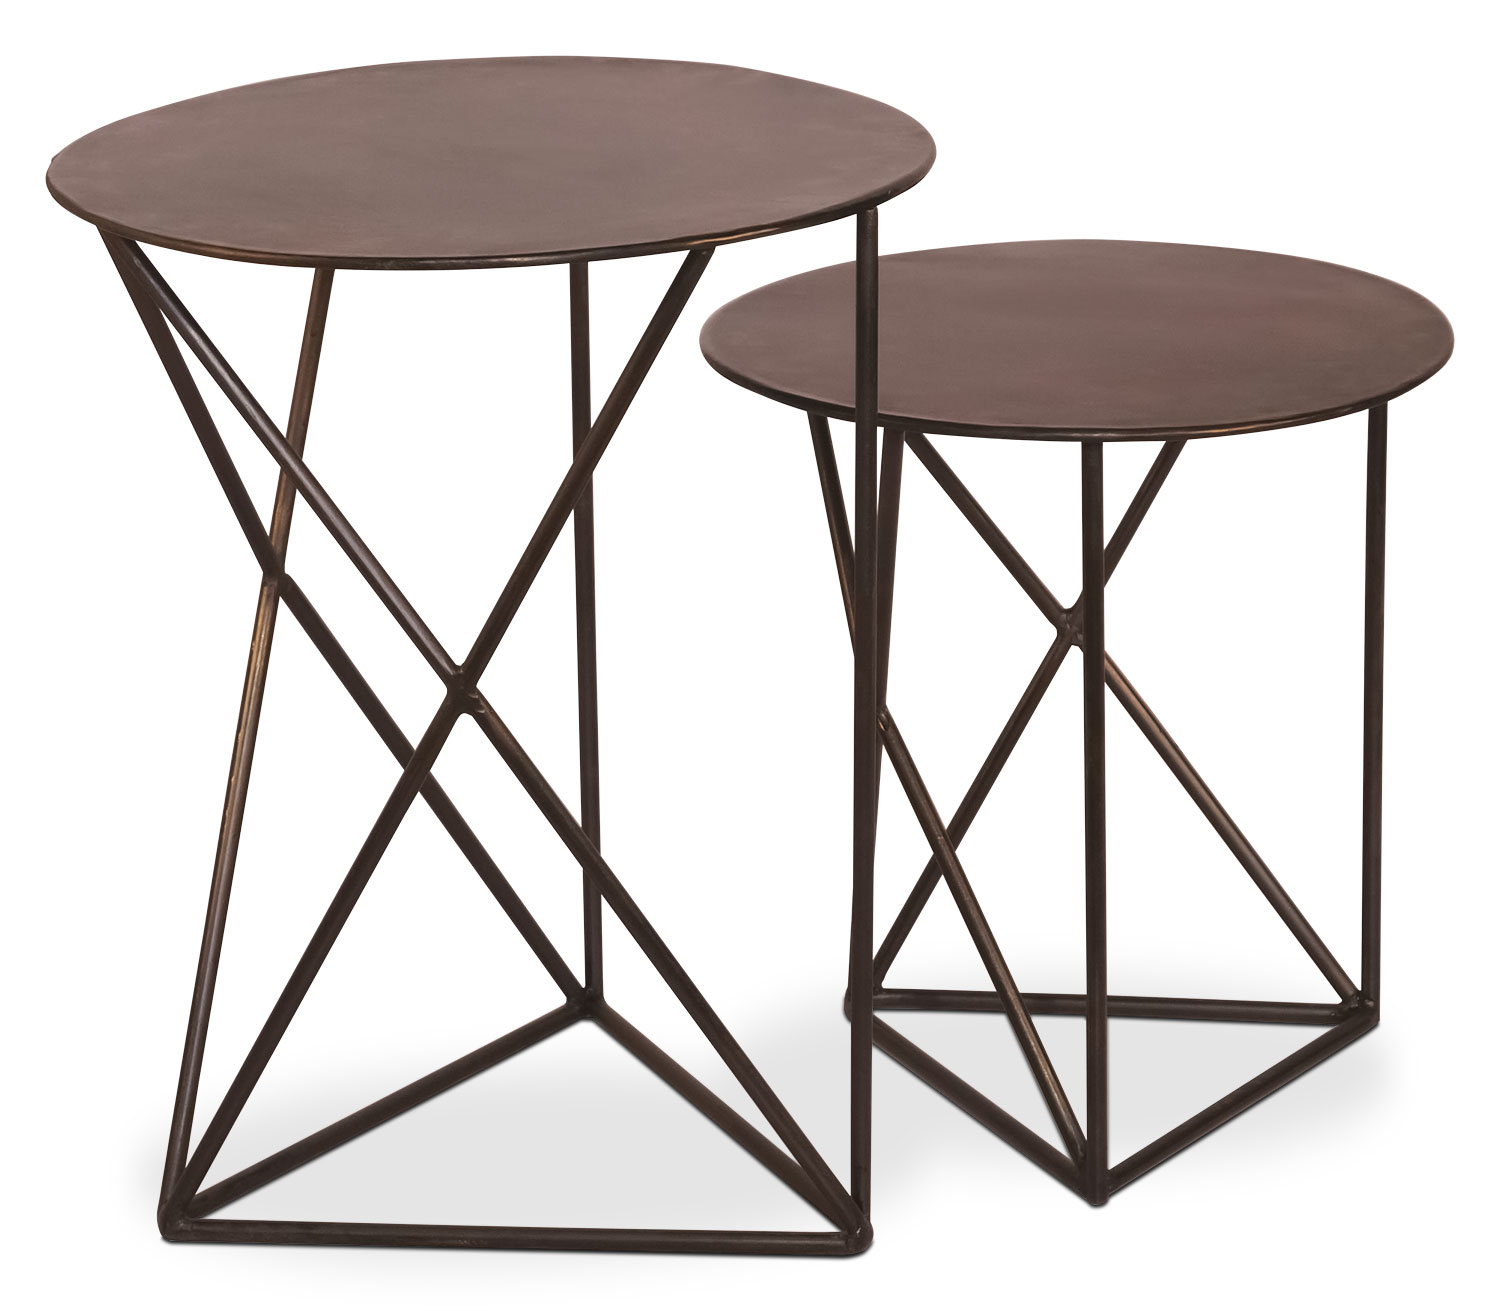 Dunbar Accent Table – Set of 2